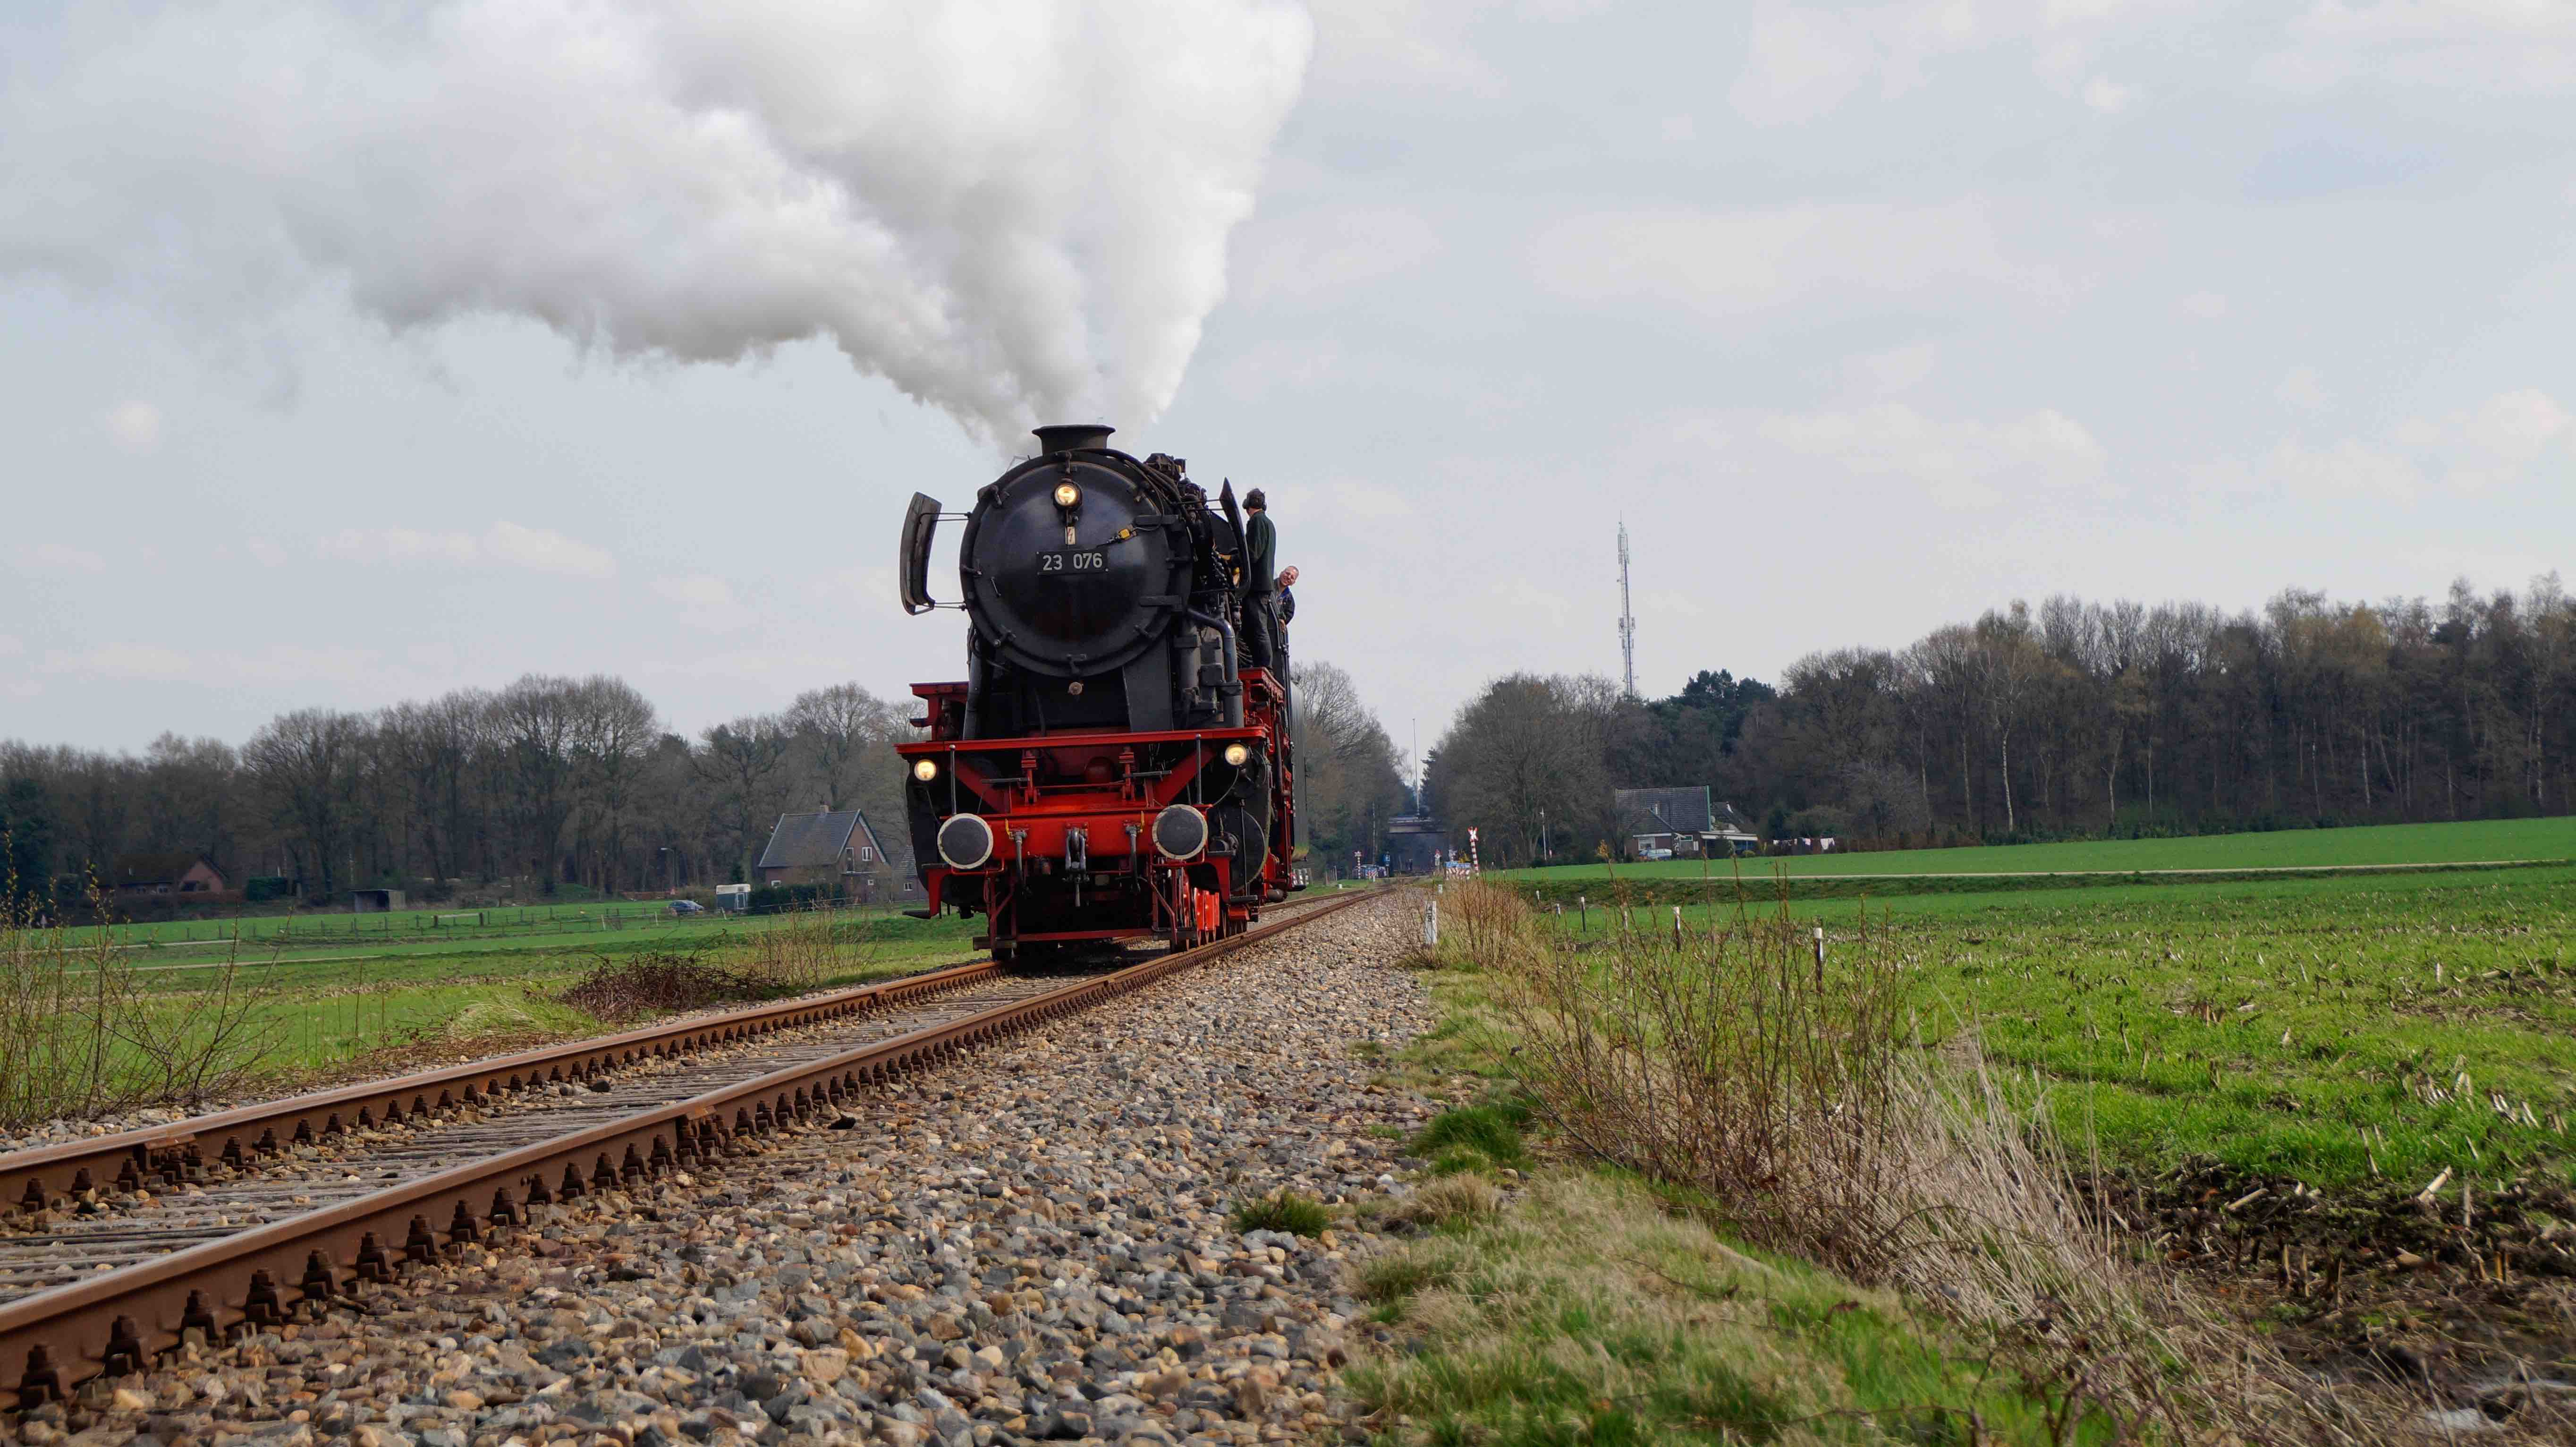 A black and red steam train on a country railway